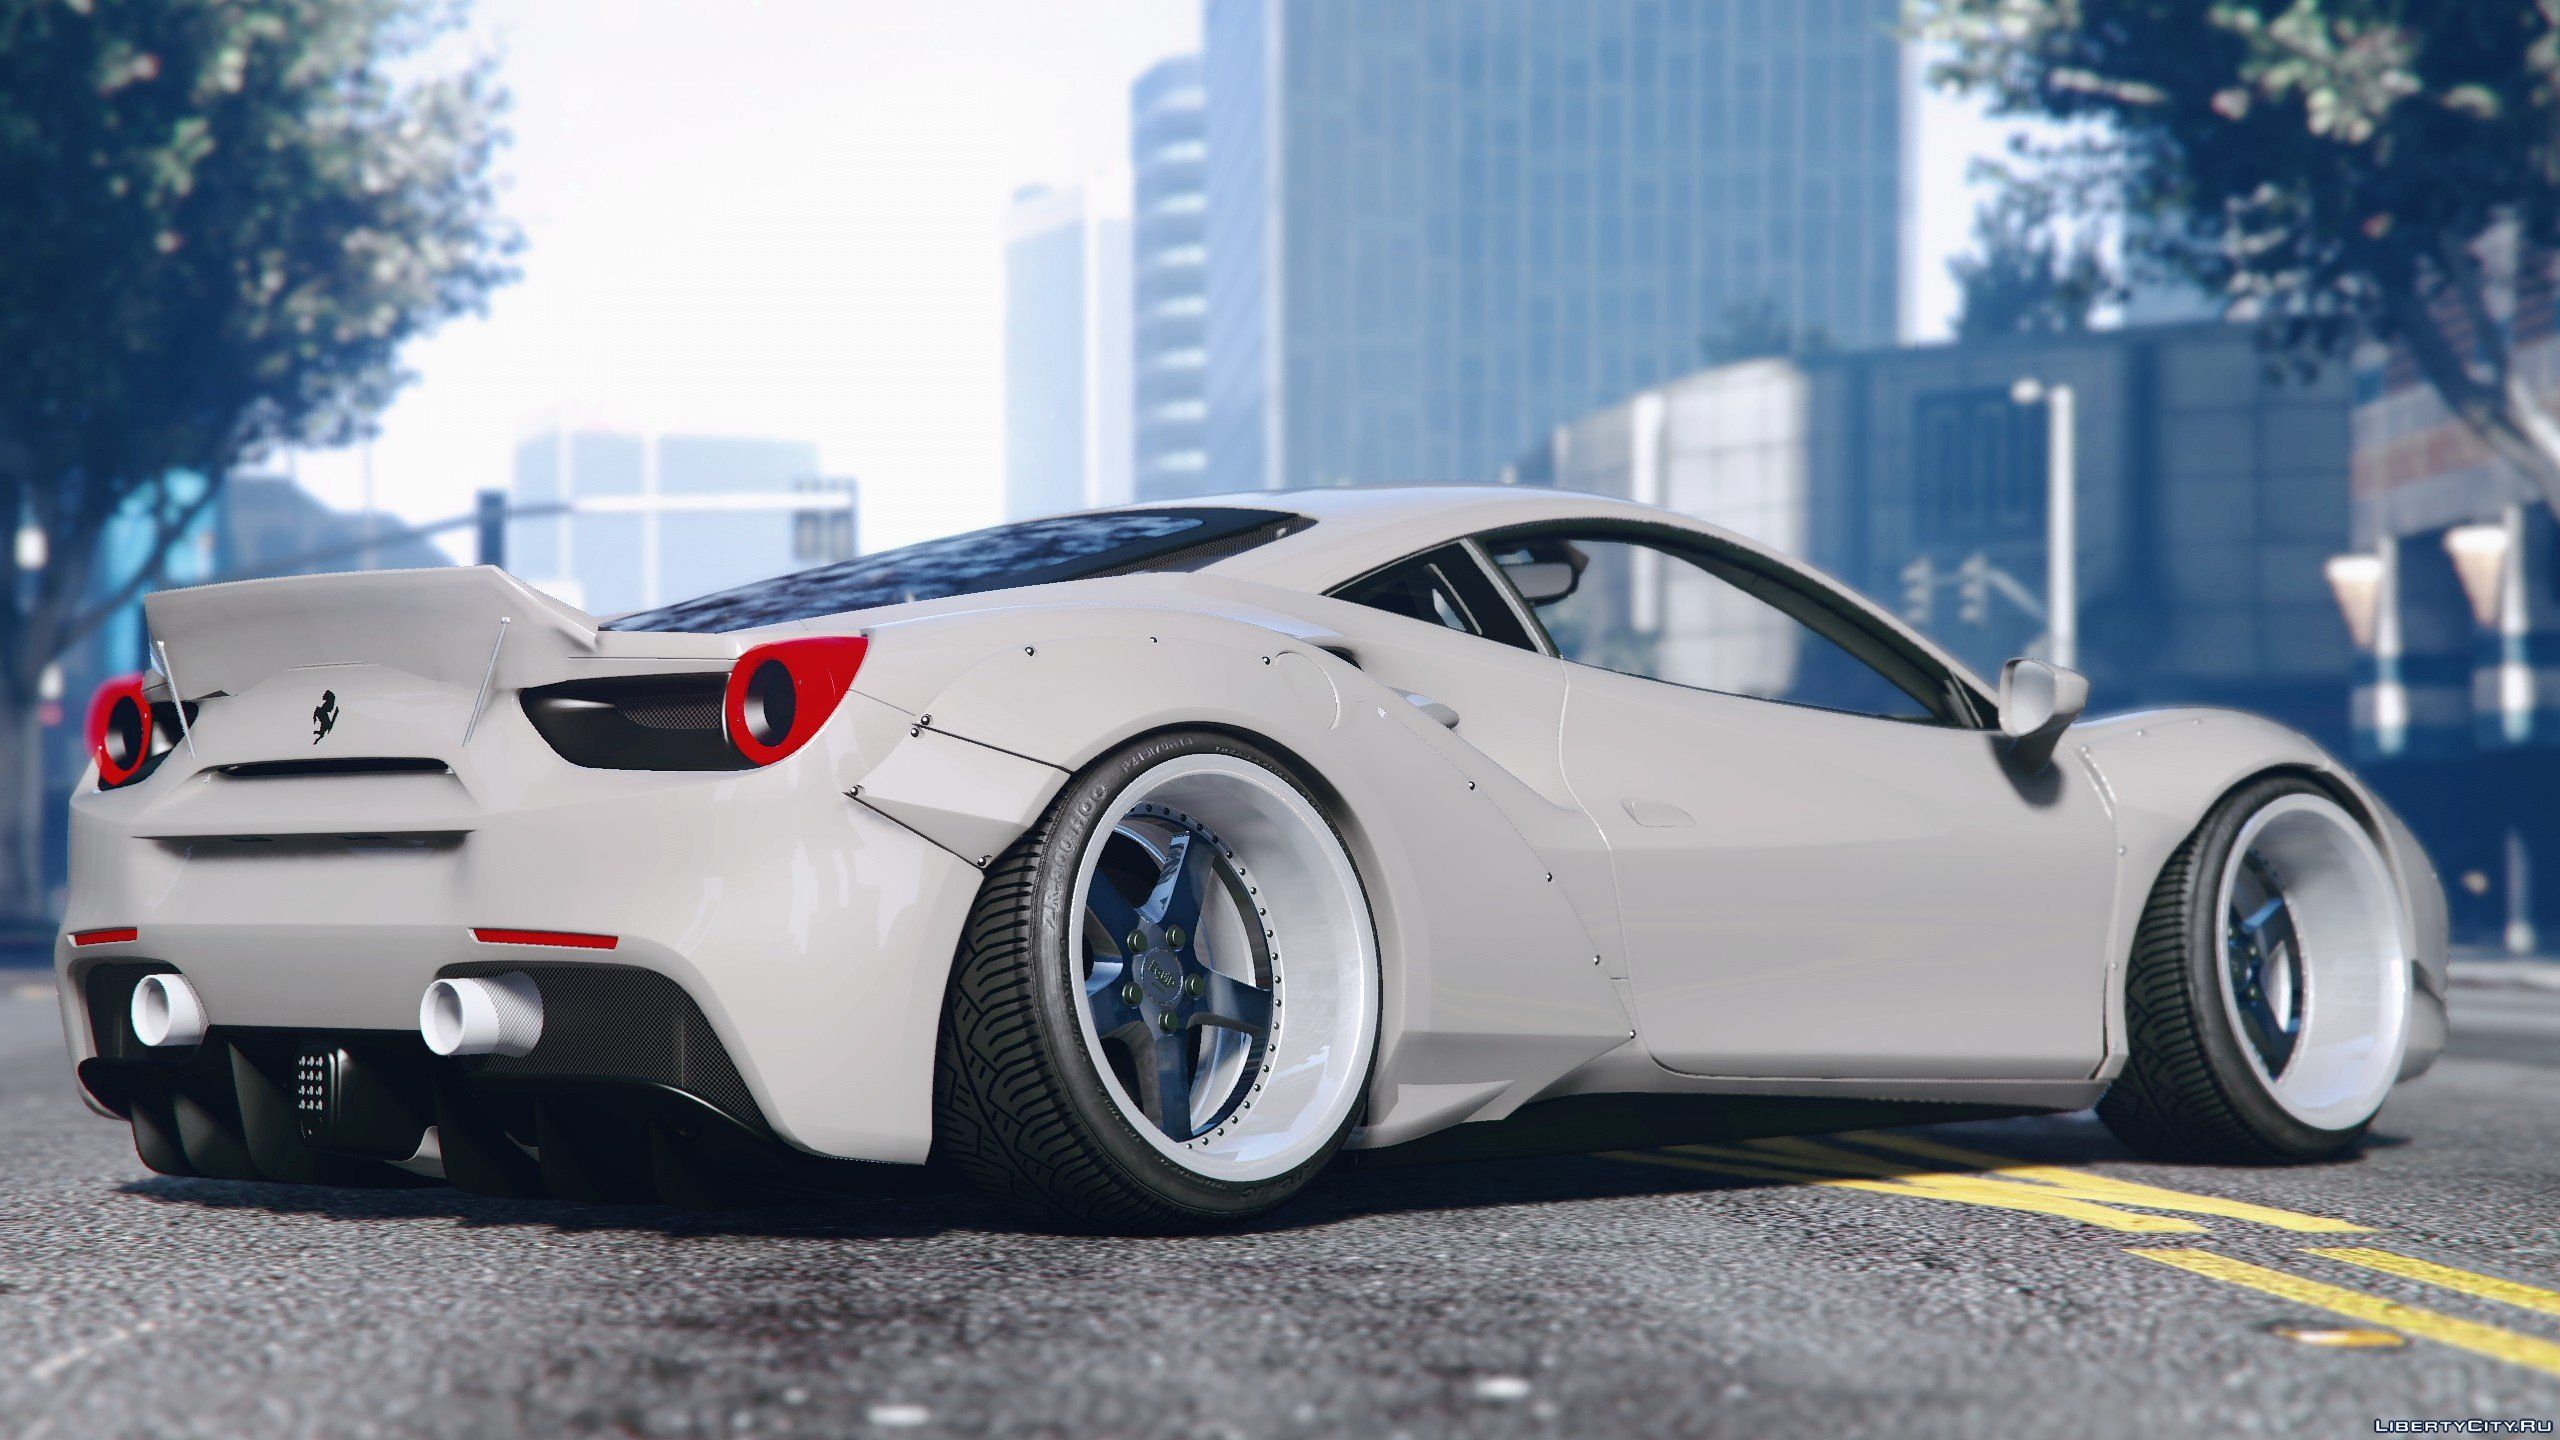 2016 Ferrari 488 Liberty Walk 0.1 for GTA 5 on liberty walk corvette, liberty walk mustang, liberty walk chevrolet, liberty walk m3, liberty walk gtr, liberty walk jeep, liberty walk 250 gto, liberty walk murcielago, liberty walk koenigsegg, liberty walk porsche, liberty walk lamborghini, liberty walk mercedes, liberty walk acura, liberty walk aventador, liberty walk ford, liberty walk range rover, liberty walk z4, liberty walk 458 spider, liberty walk cars, liberty walk bmw,